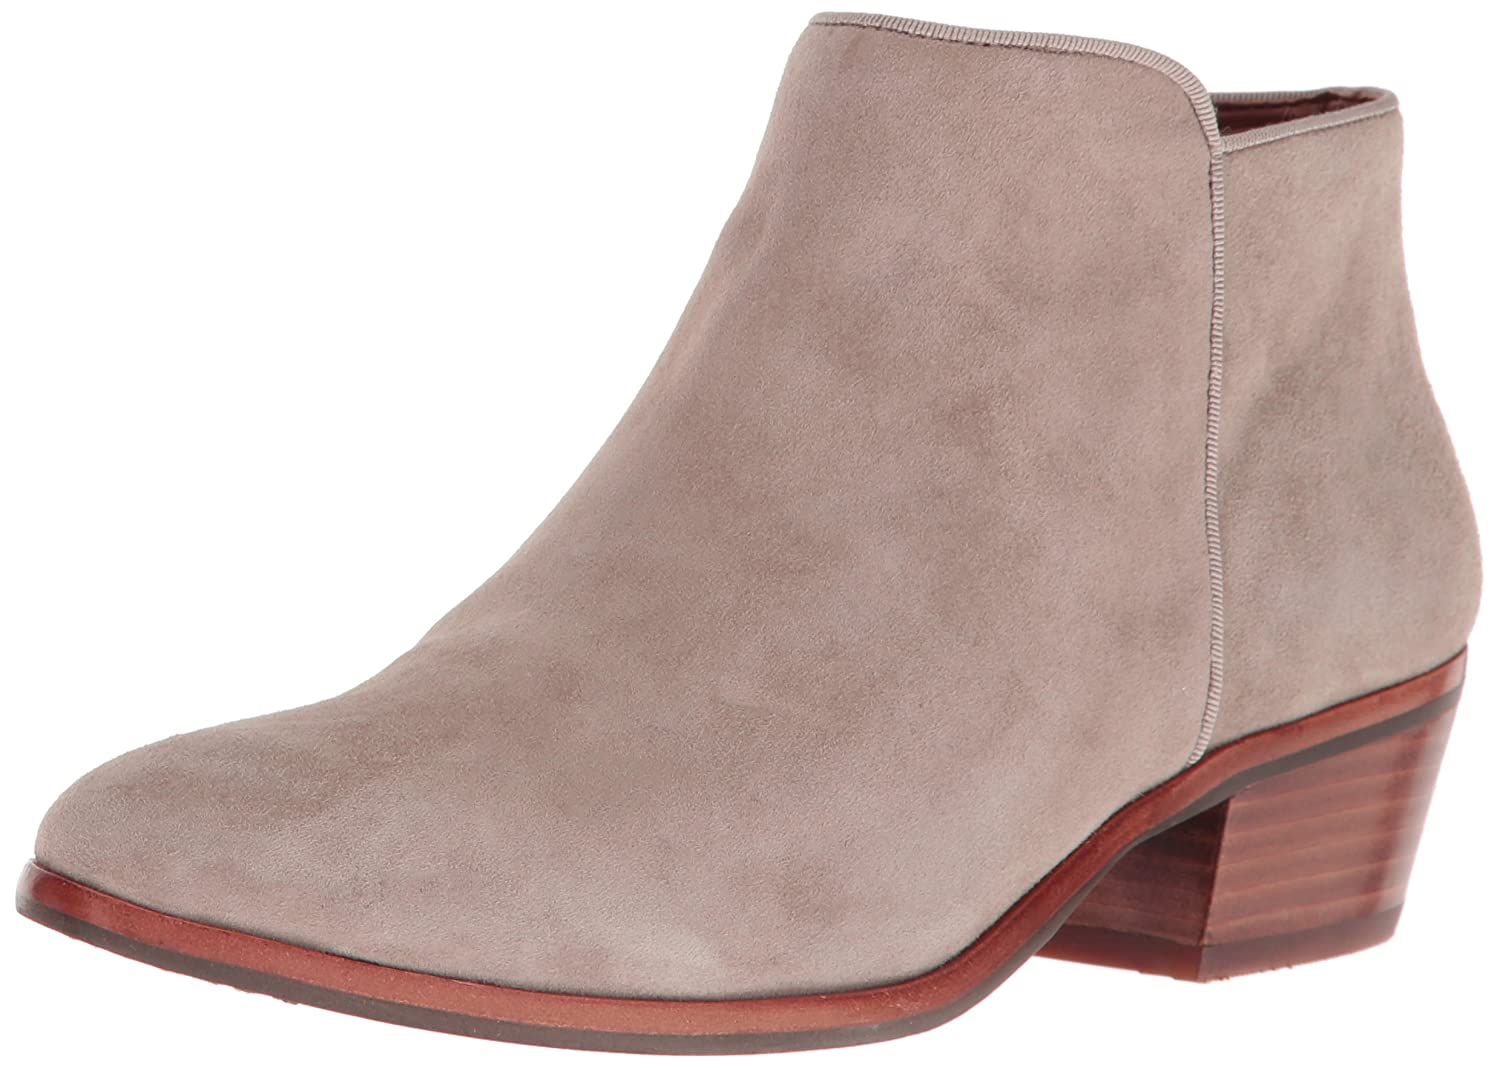 41854bd8d SAM EDELMAN Women s Petty Ankle Bootie